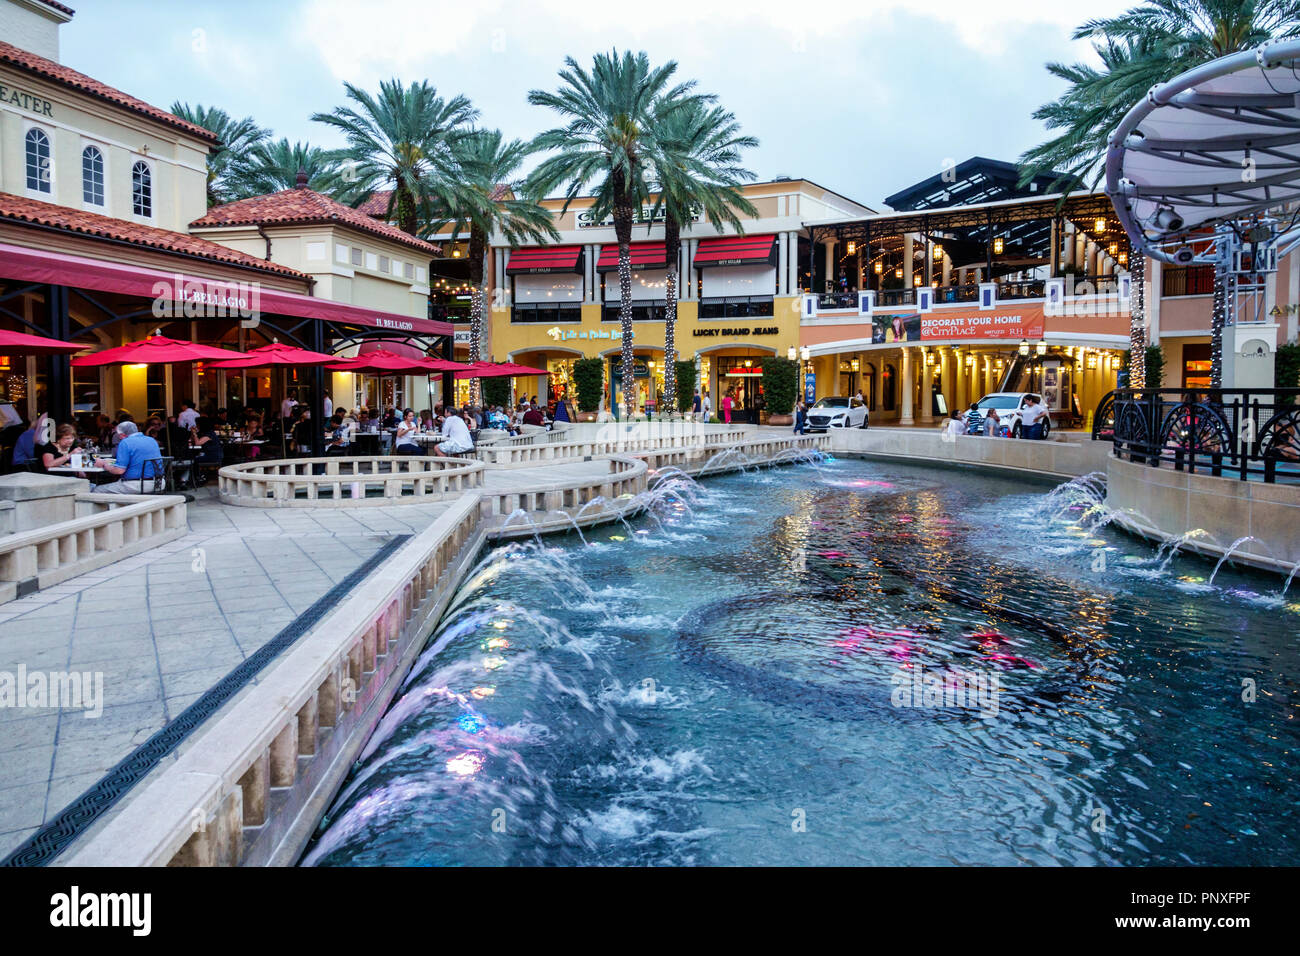 West Palm Beach Florida Cityplace Shopping Plaza Fountain Il